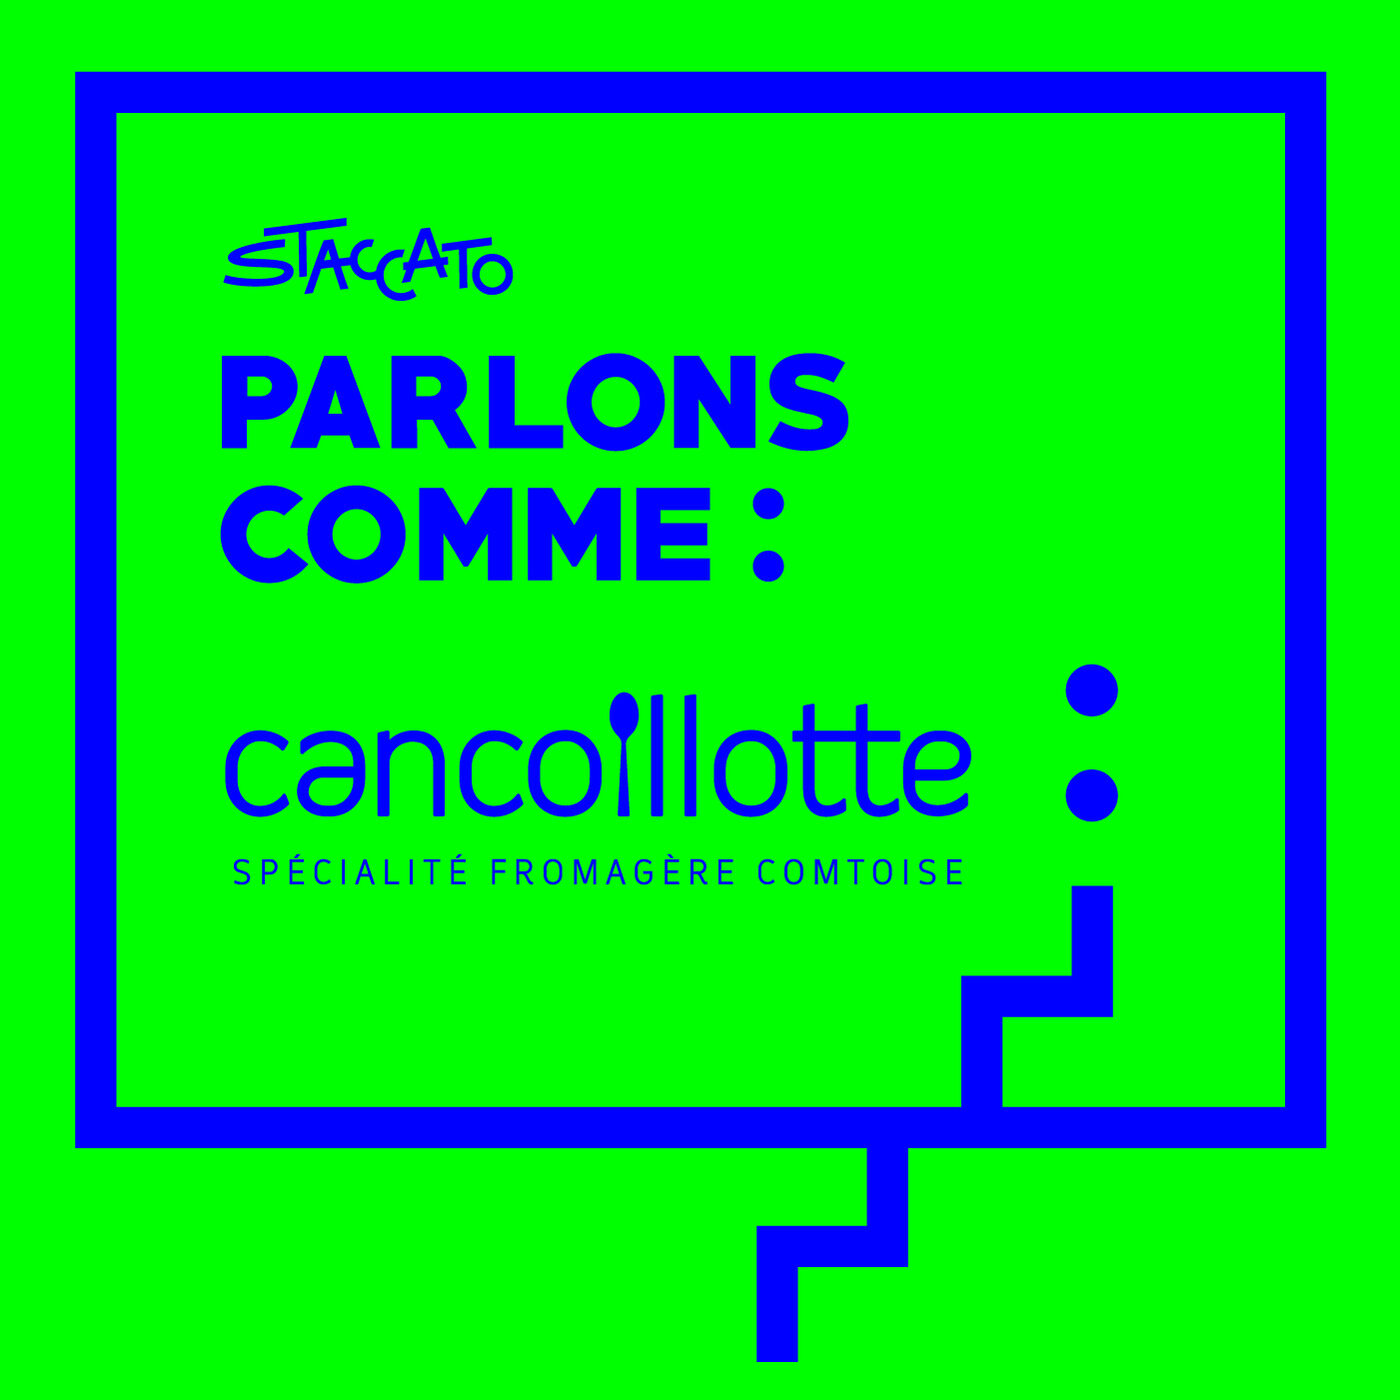 L'association de la promotion de la cancoillotte